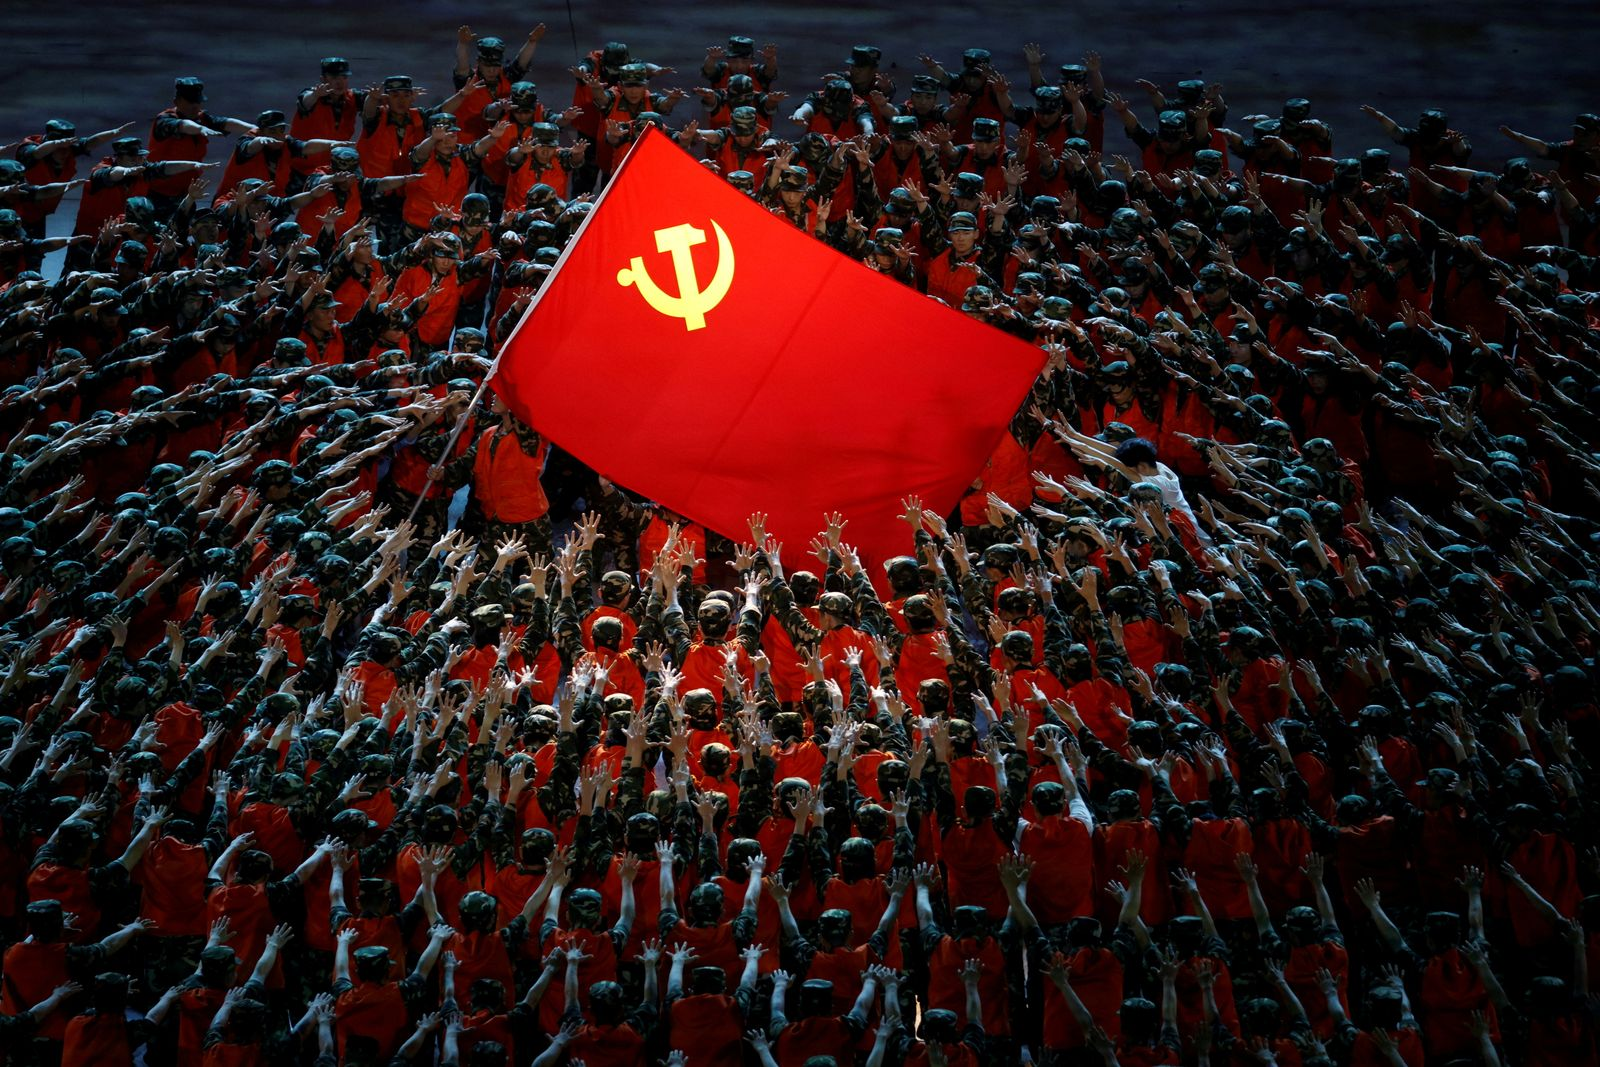 Show commemorating the 100th anniversary of the founding of the Communist Party of China, in Beijing